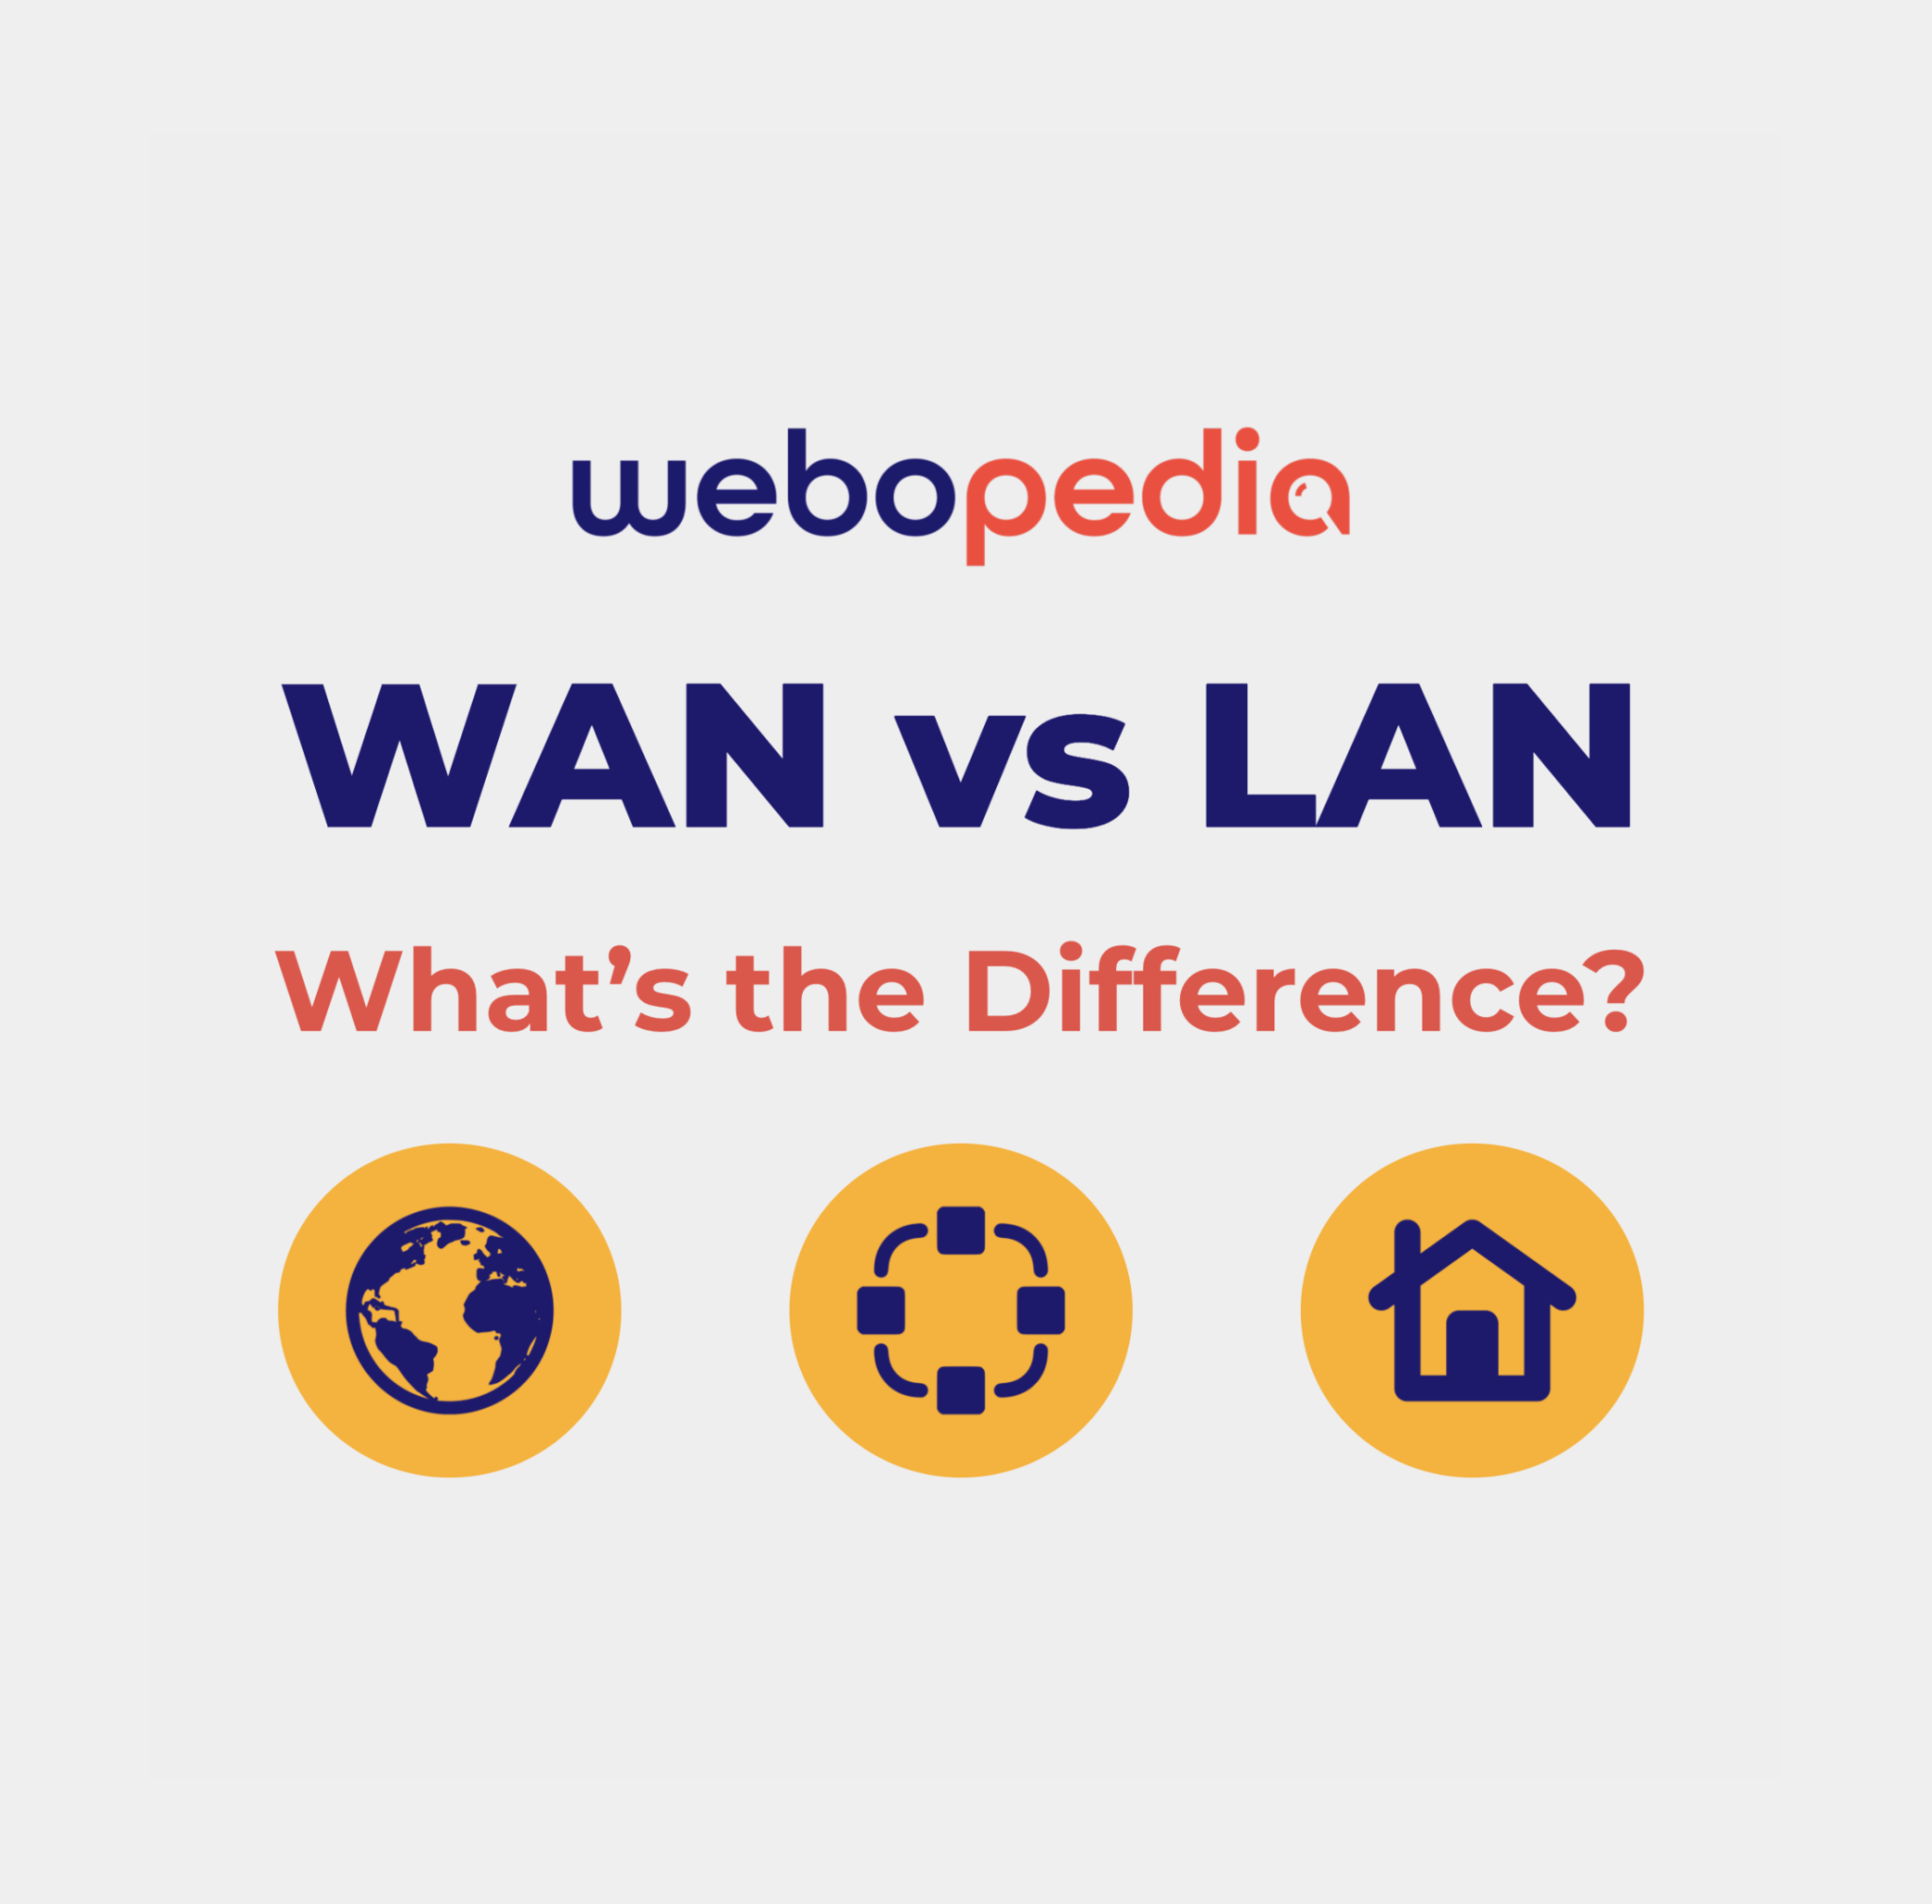 """A graphic image introducing the article topic and title WAN vs LAN and the words """"What's the Difference?"""" Three icons sit below showing a globe, network, and house, with the Webopedia logo above."""